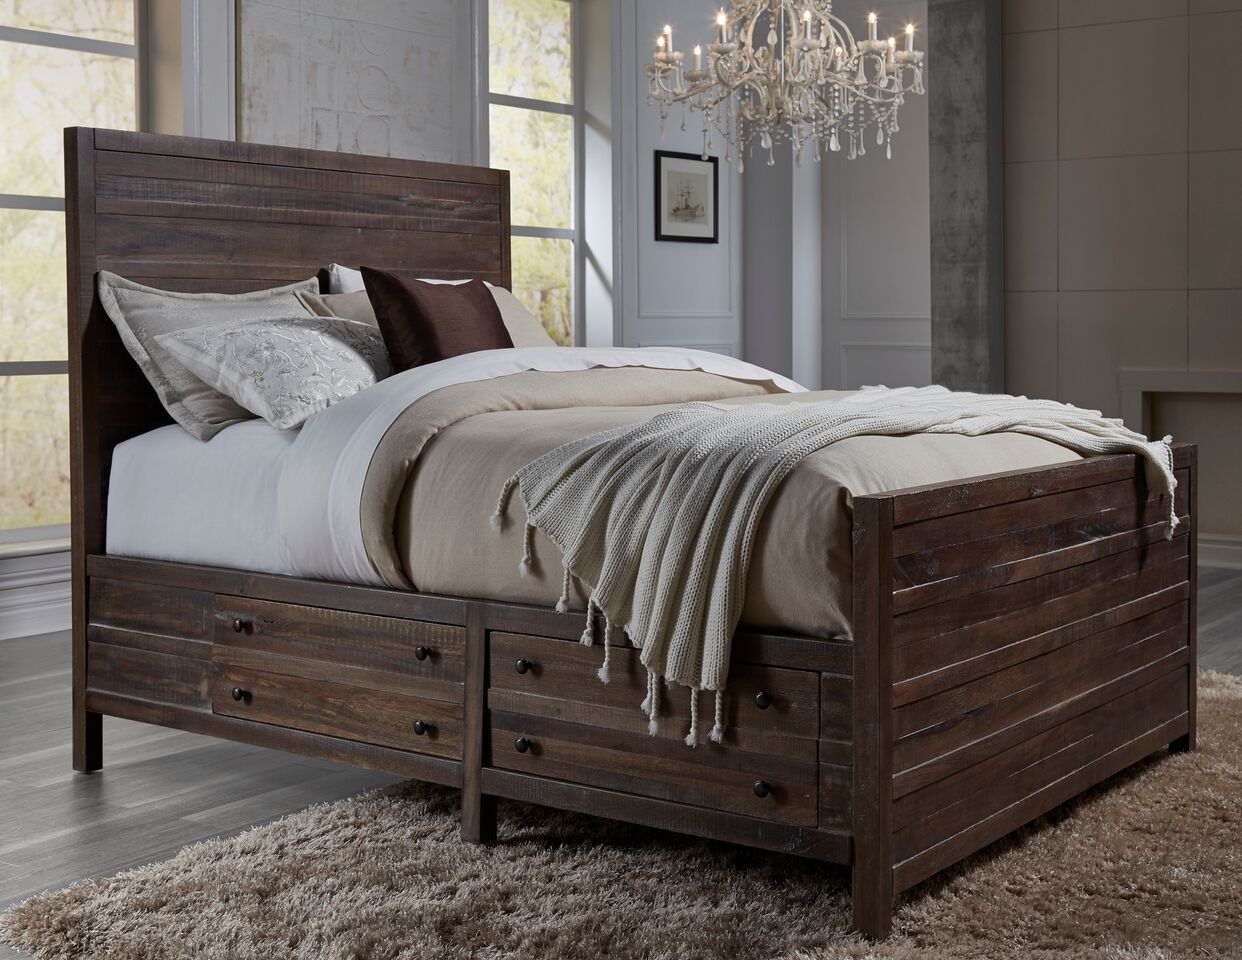 Solid Wood Bed Townsend Solid Wood Panel Storage Bed By Modus Usa